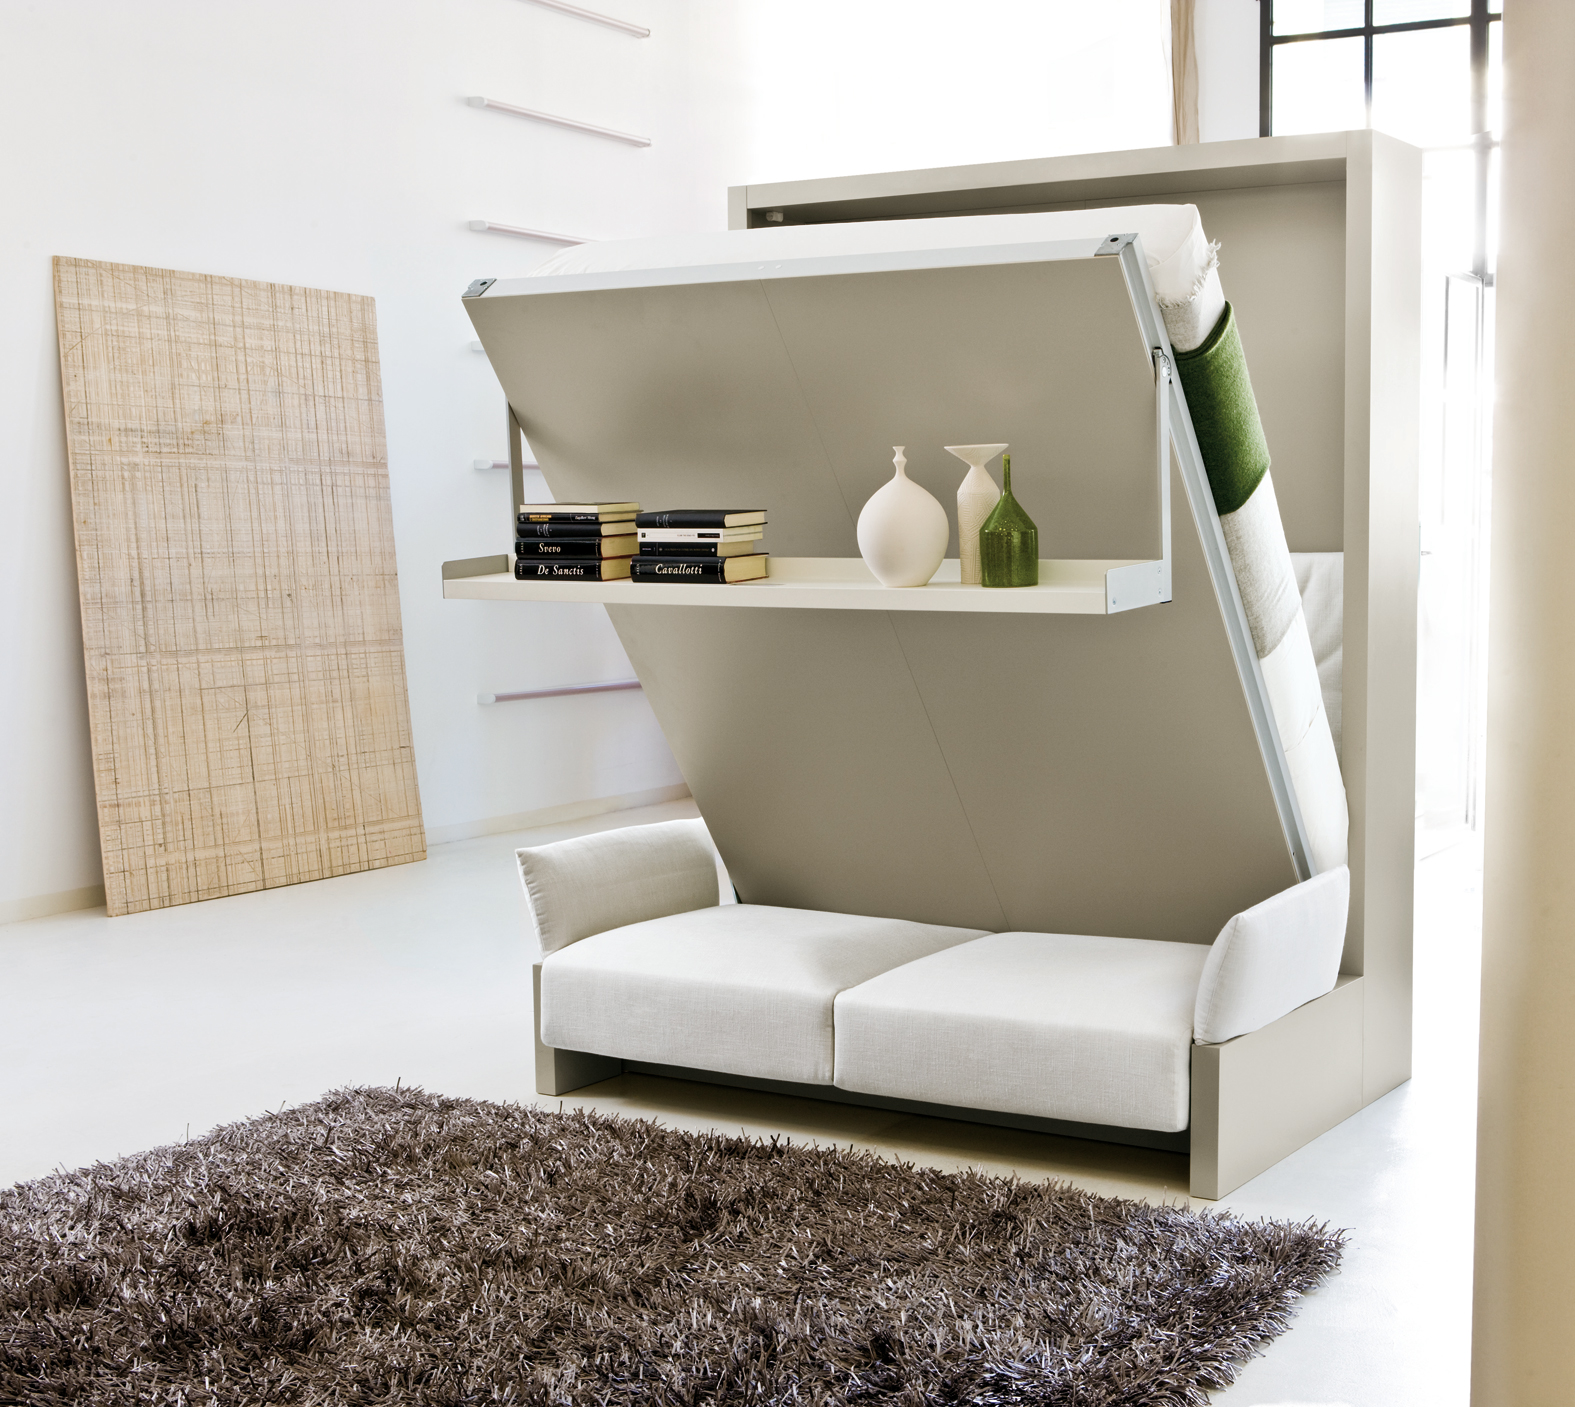 Beds For Small Spaces Part - 26: Sofa That Turn Into Bed White Theme And Fur Rug In Modern Room